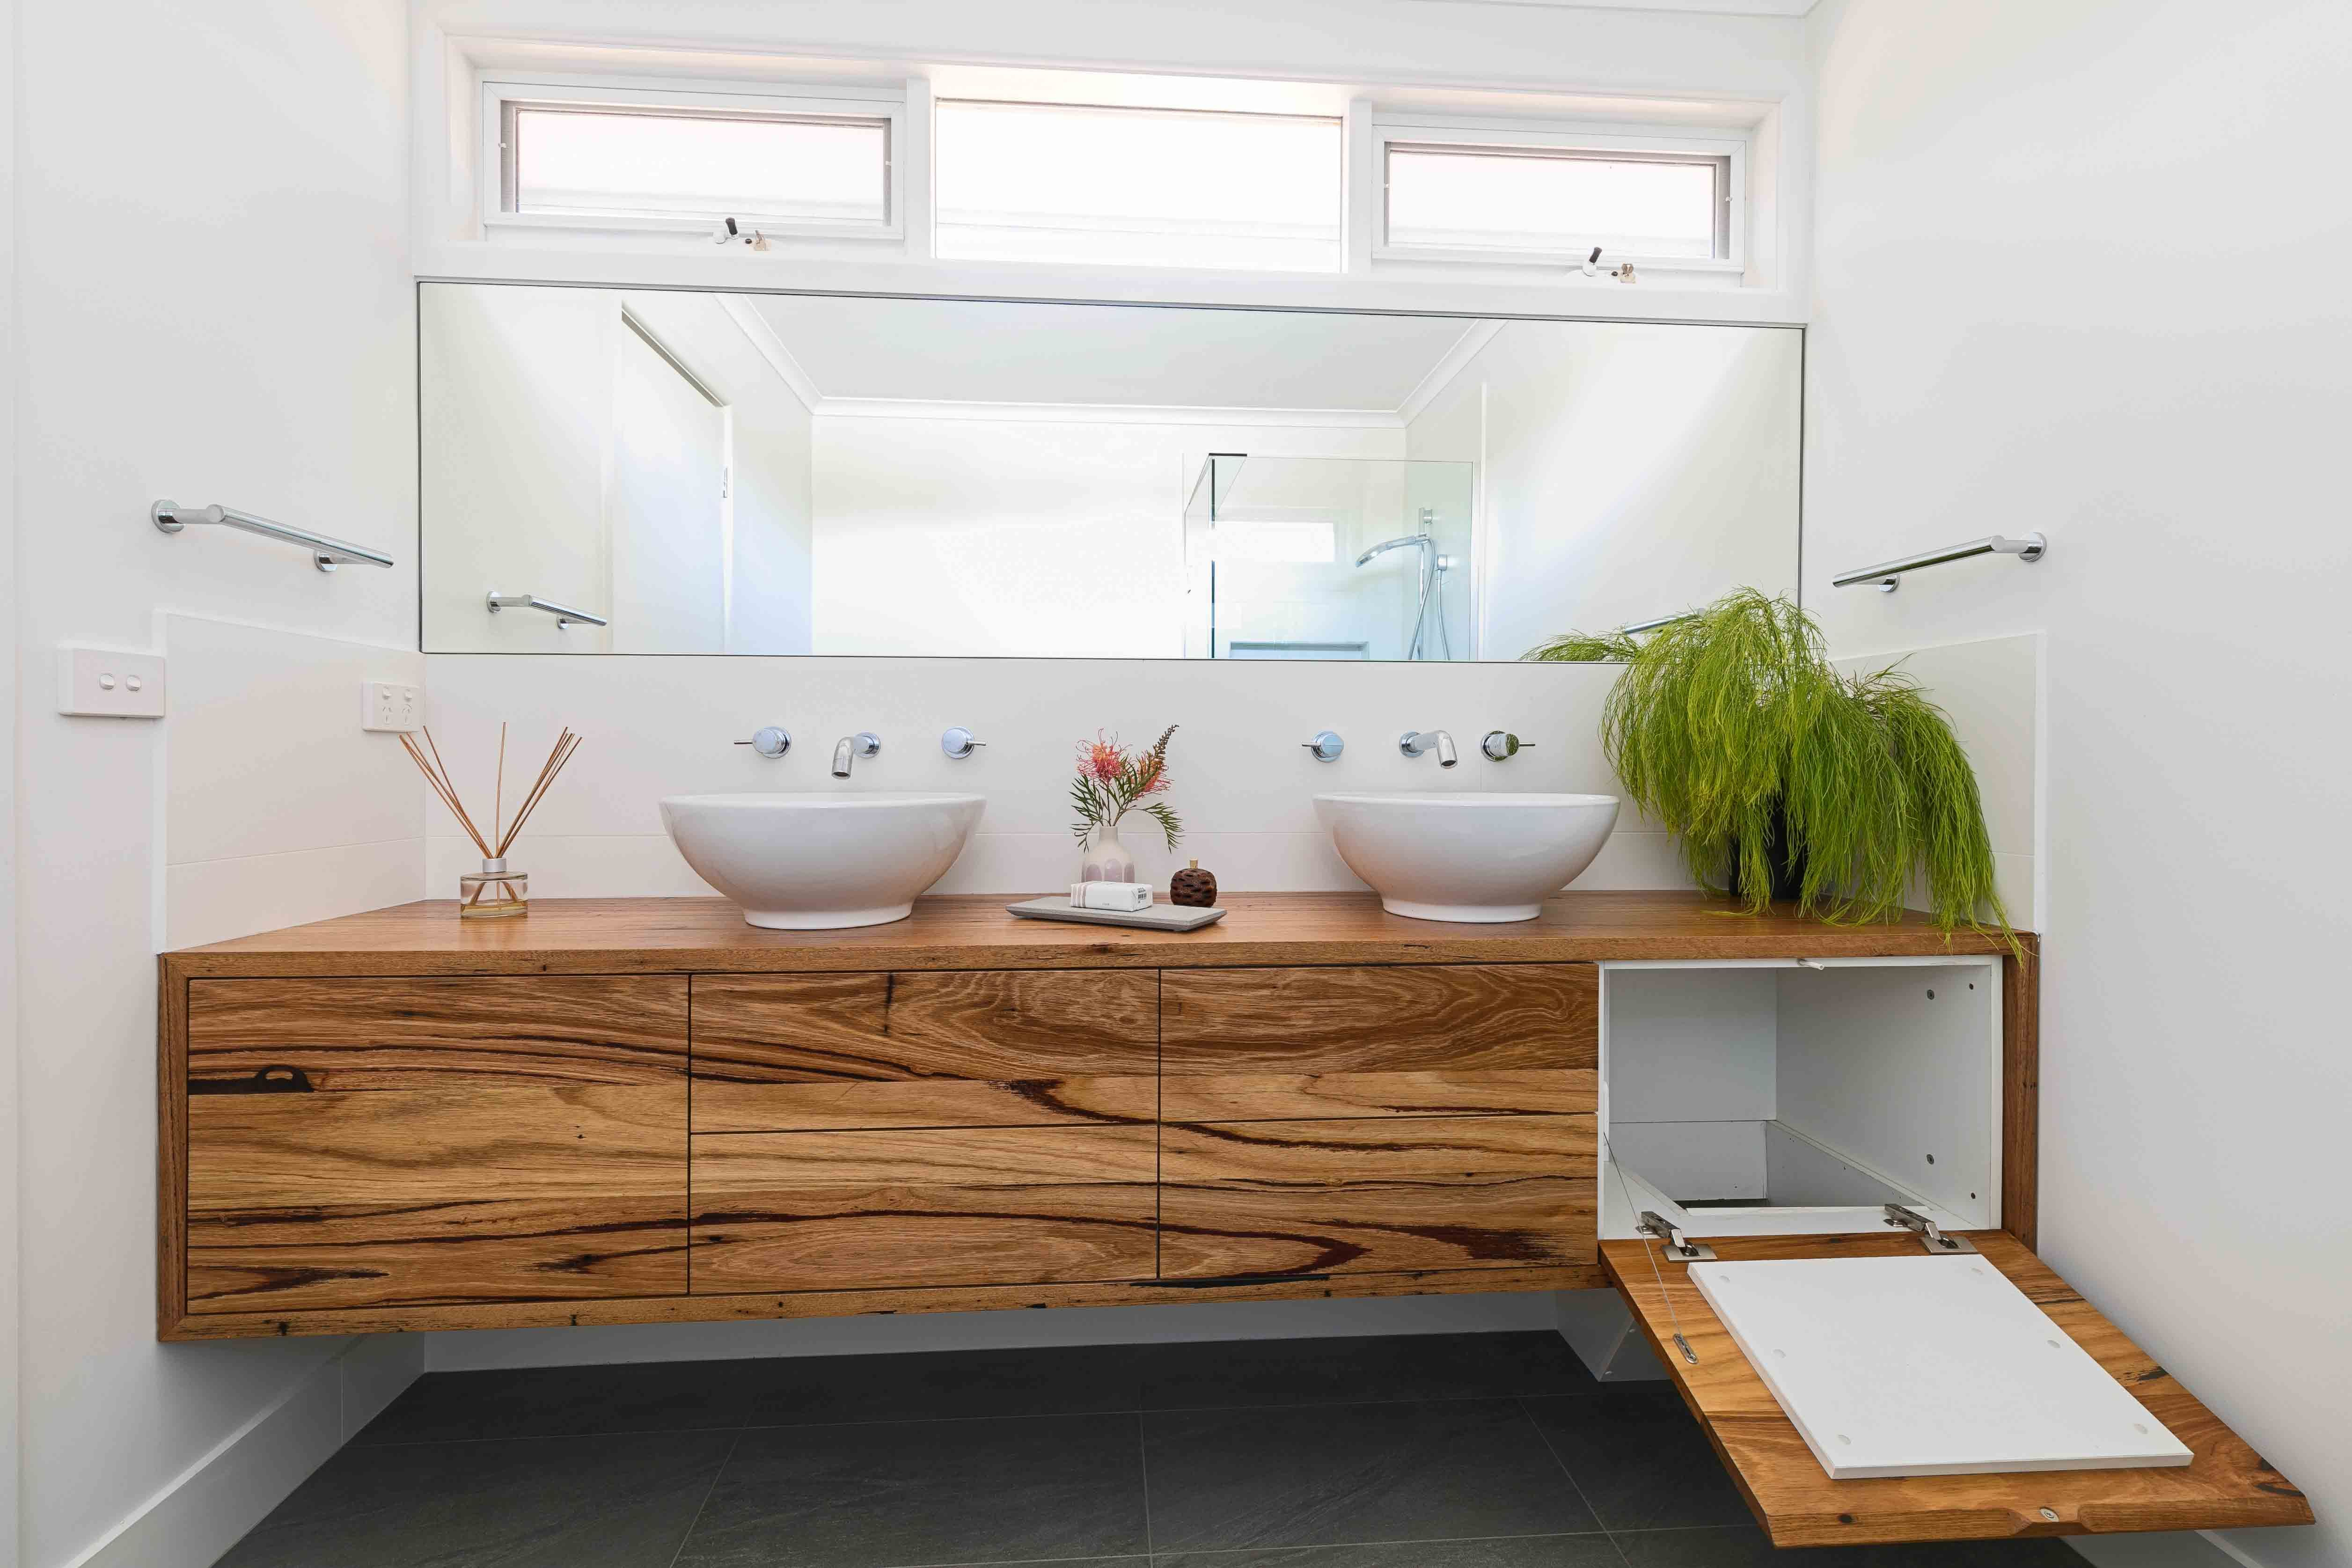 Recycled Messmate Blend Timber Floating Double Vanity With Built In Laundry Shoot Supplied To Client Renovatio Laundry In Bathroom Laundry Shoot Laundry Chute